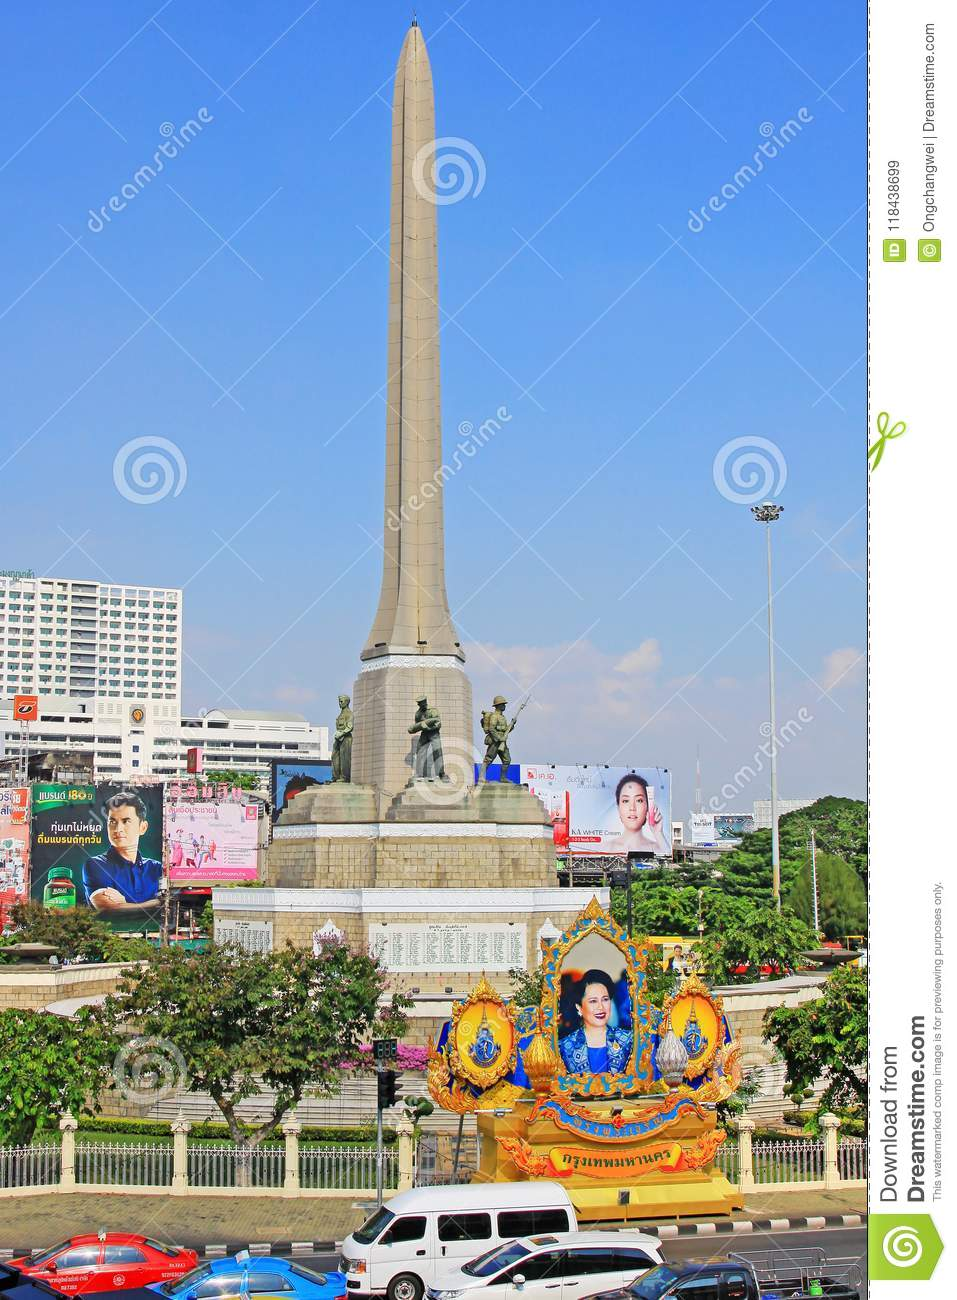 8f9261bd23 Victory Monument is an Obelisk monument in Bangkok